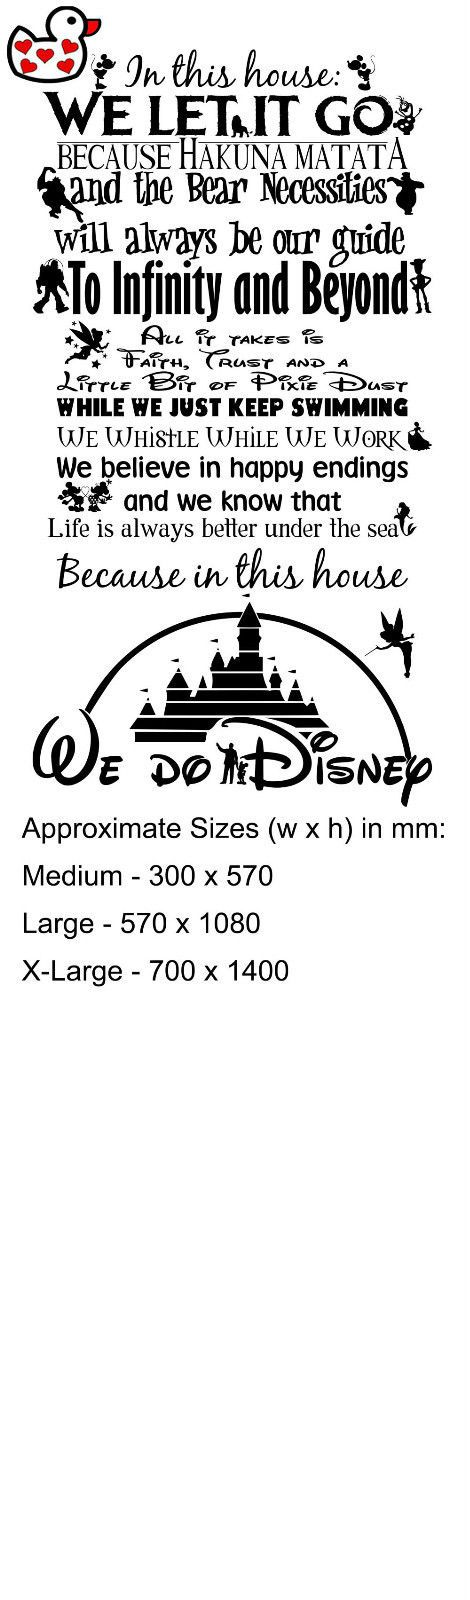 We Do Disney Style Quote In This House Rules Vinyl Wall Art Sticker Mural UK in Home, Furniture & DIY, Home Decor, Wall Decals & Stickers | eBay